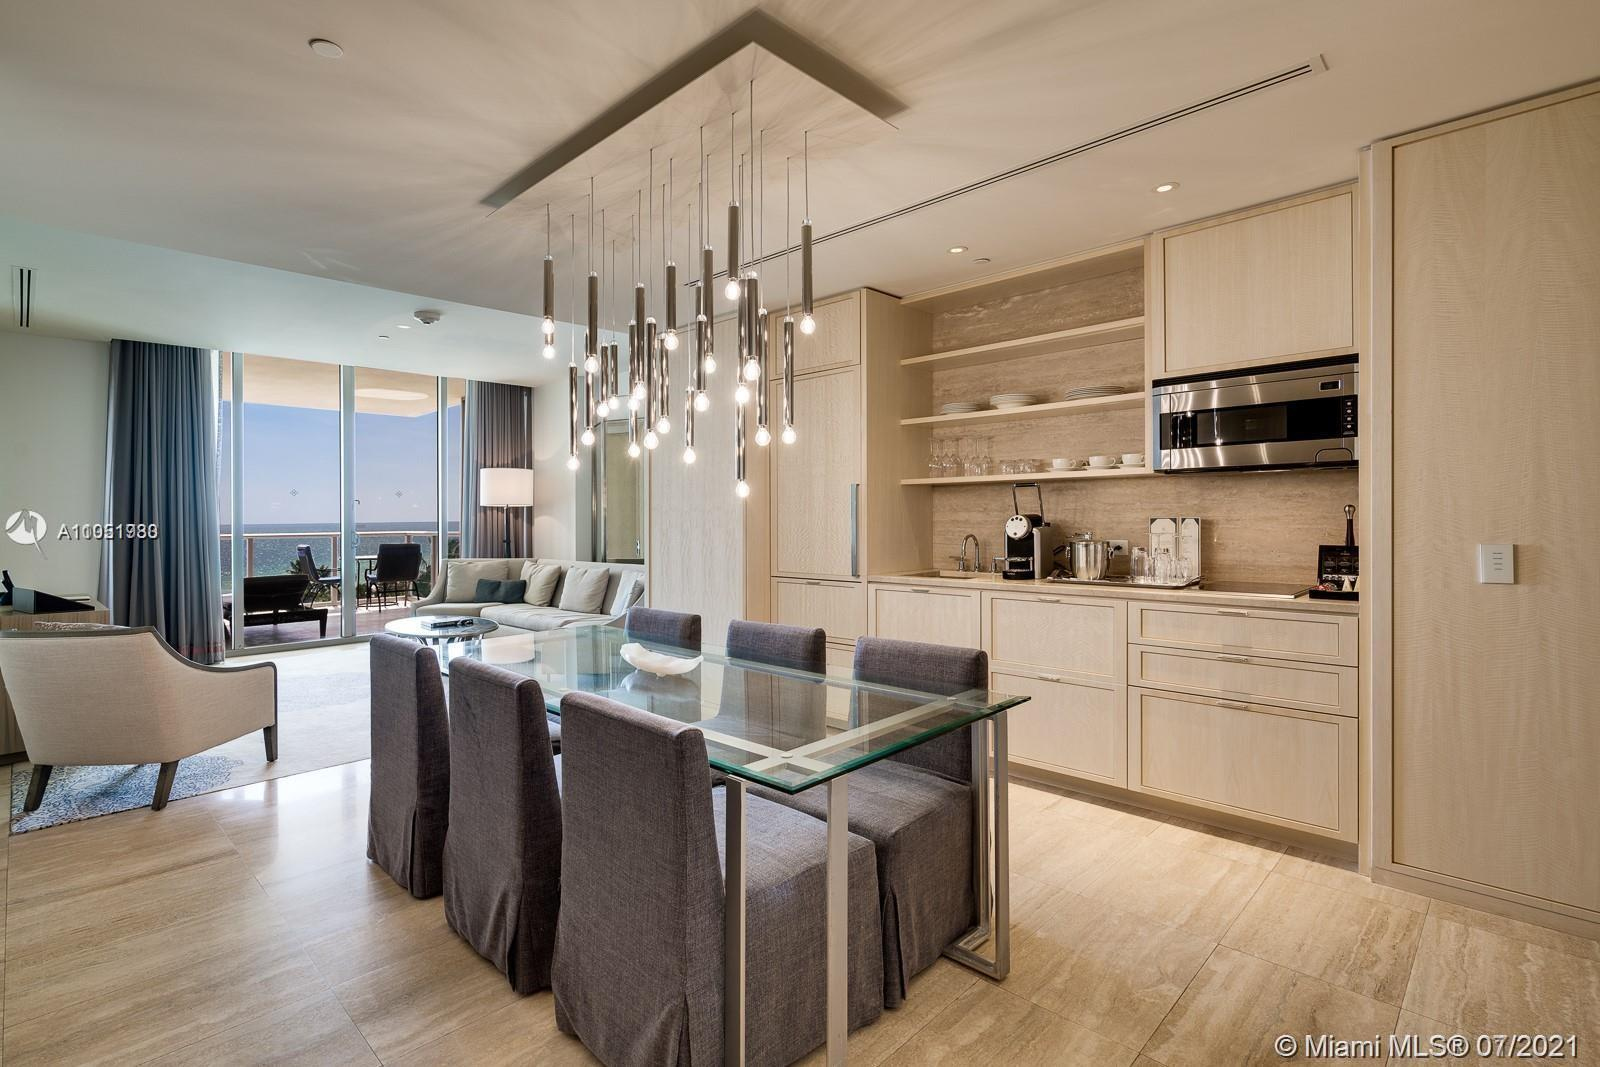 Beautiful 1 BED 2 BATH + DEN CONVERTIBLE IN A 2 BEDS condo located in the luxurious area of Bal Harb